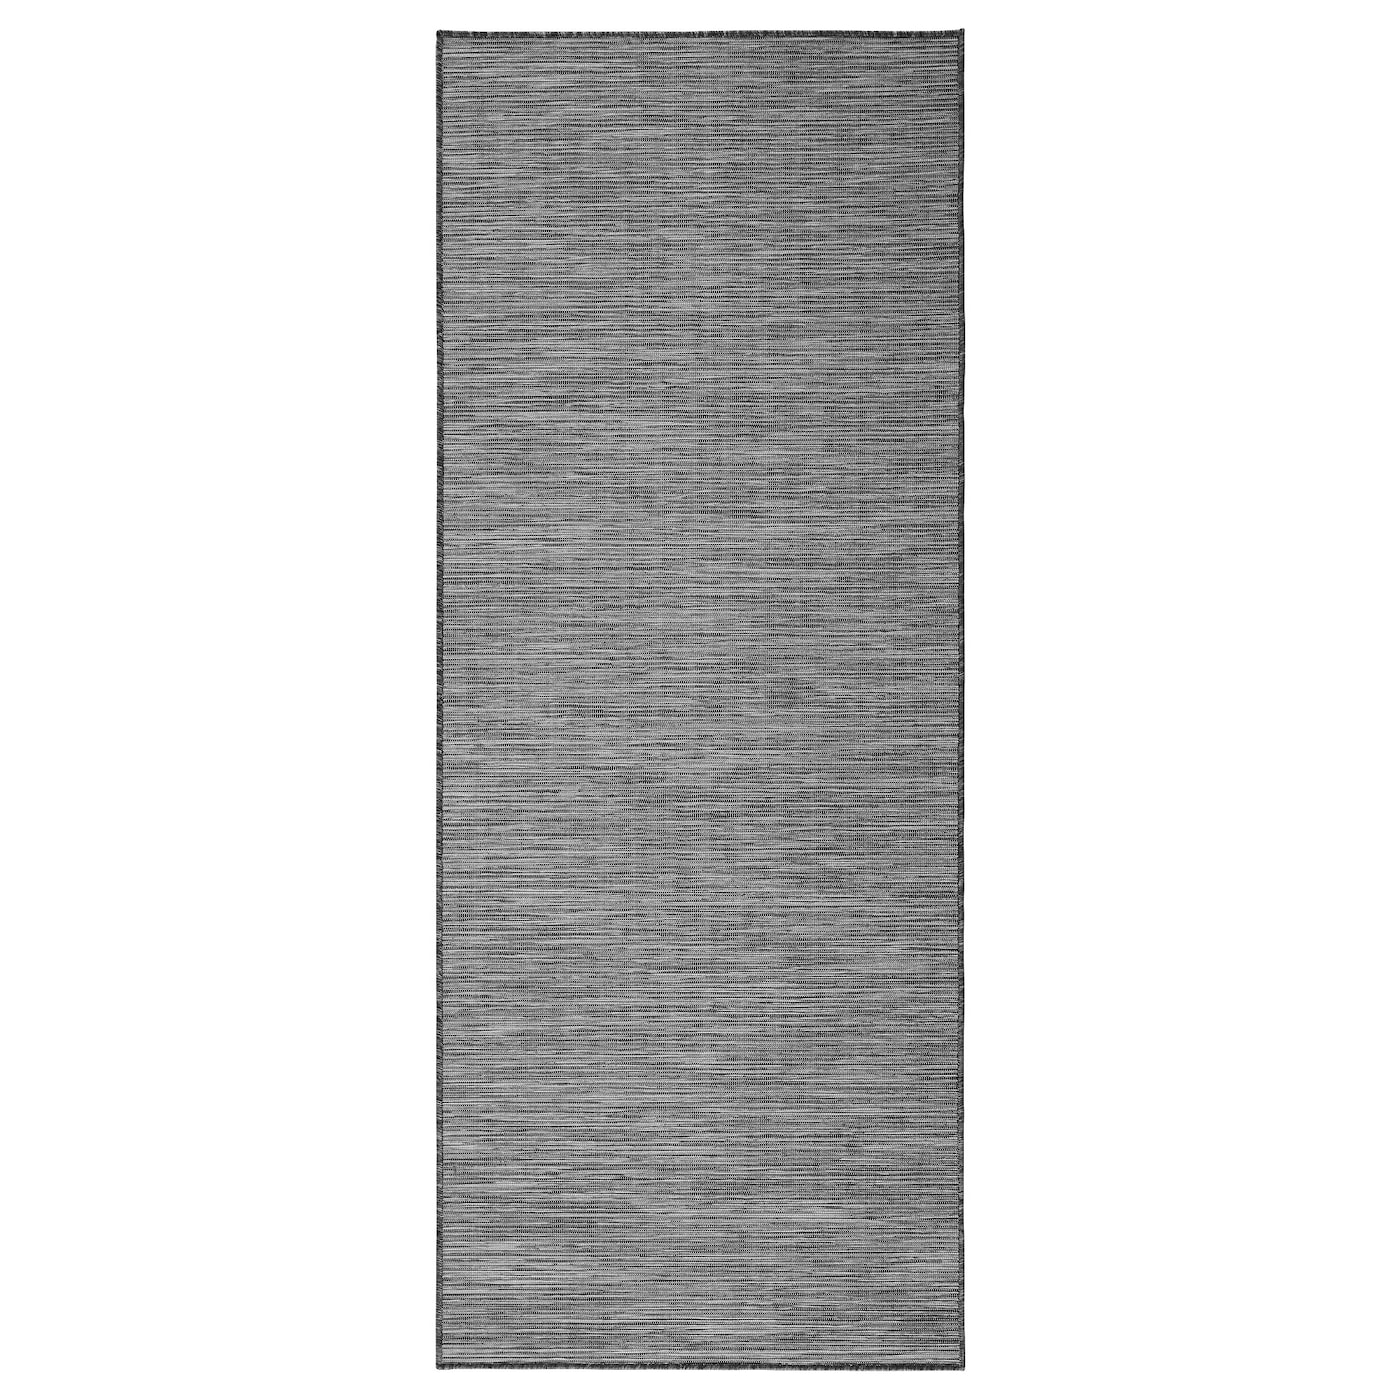 hodde rug flatwoven in outdoor grey black 80 x 200 cm ikea. Black Bedroom Furniture Sets. Home Design Ideas